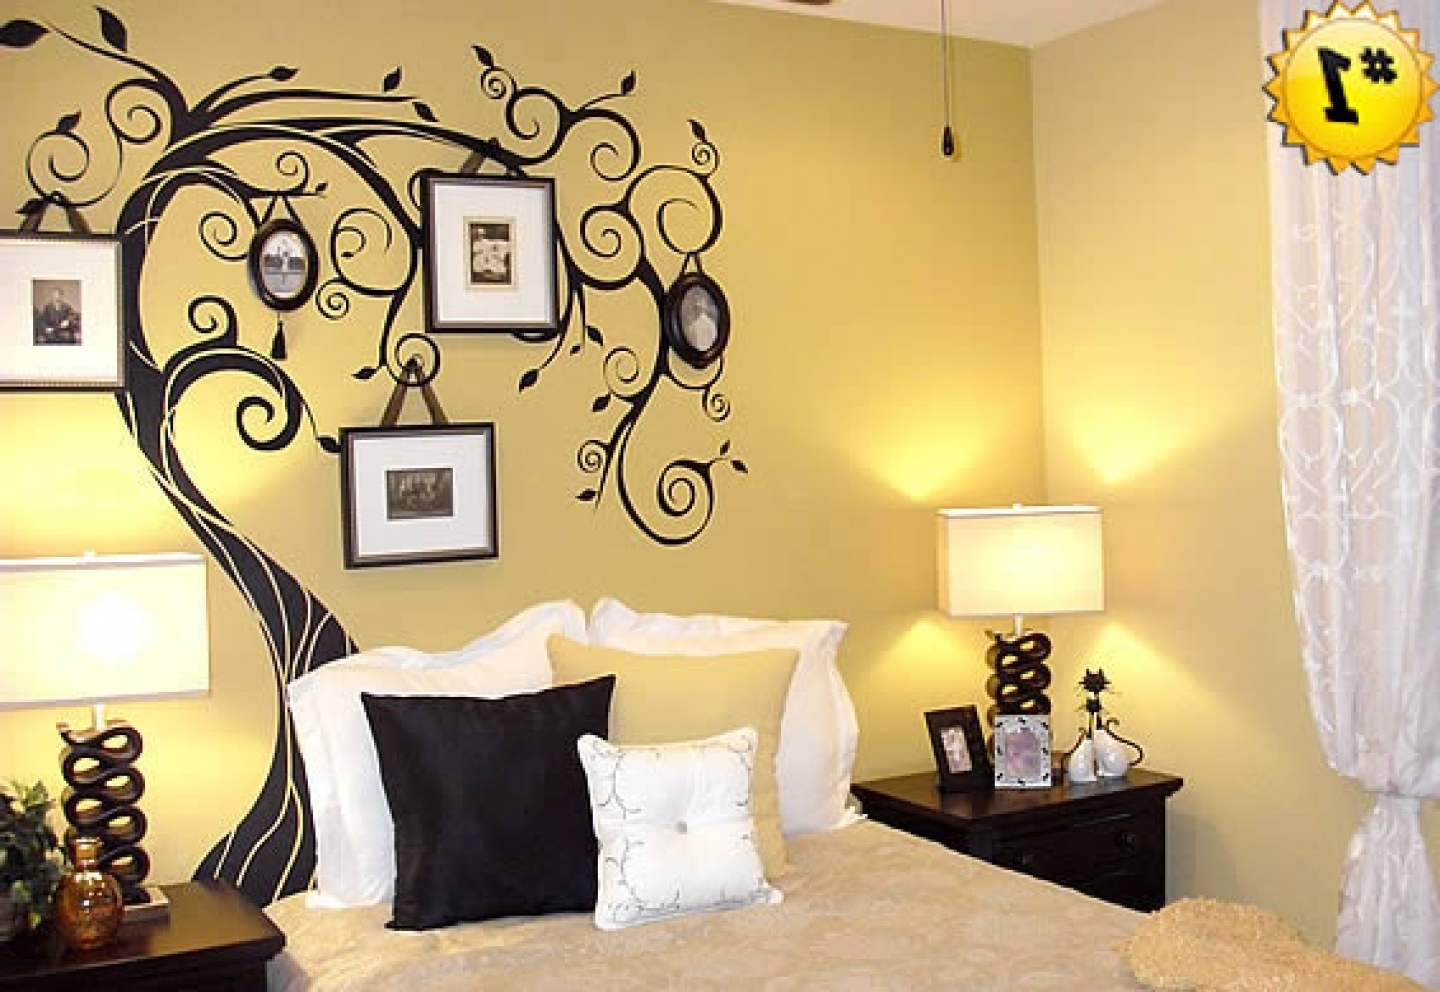 2018 Best of Glamorous Wall Art